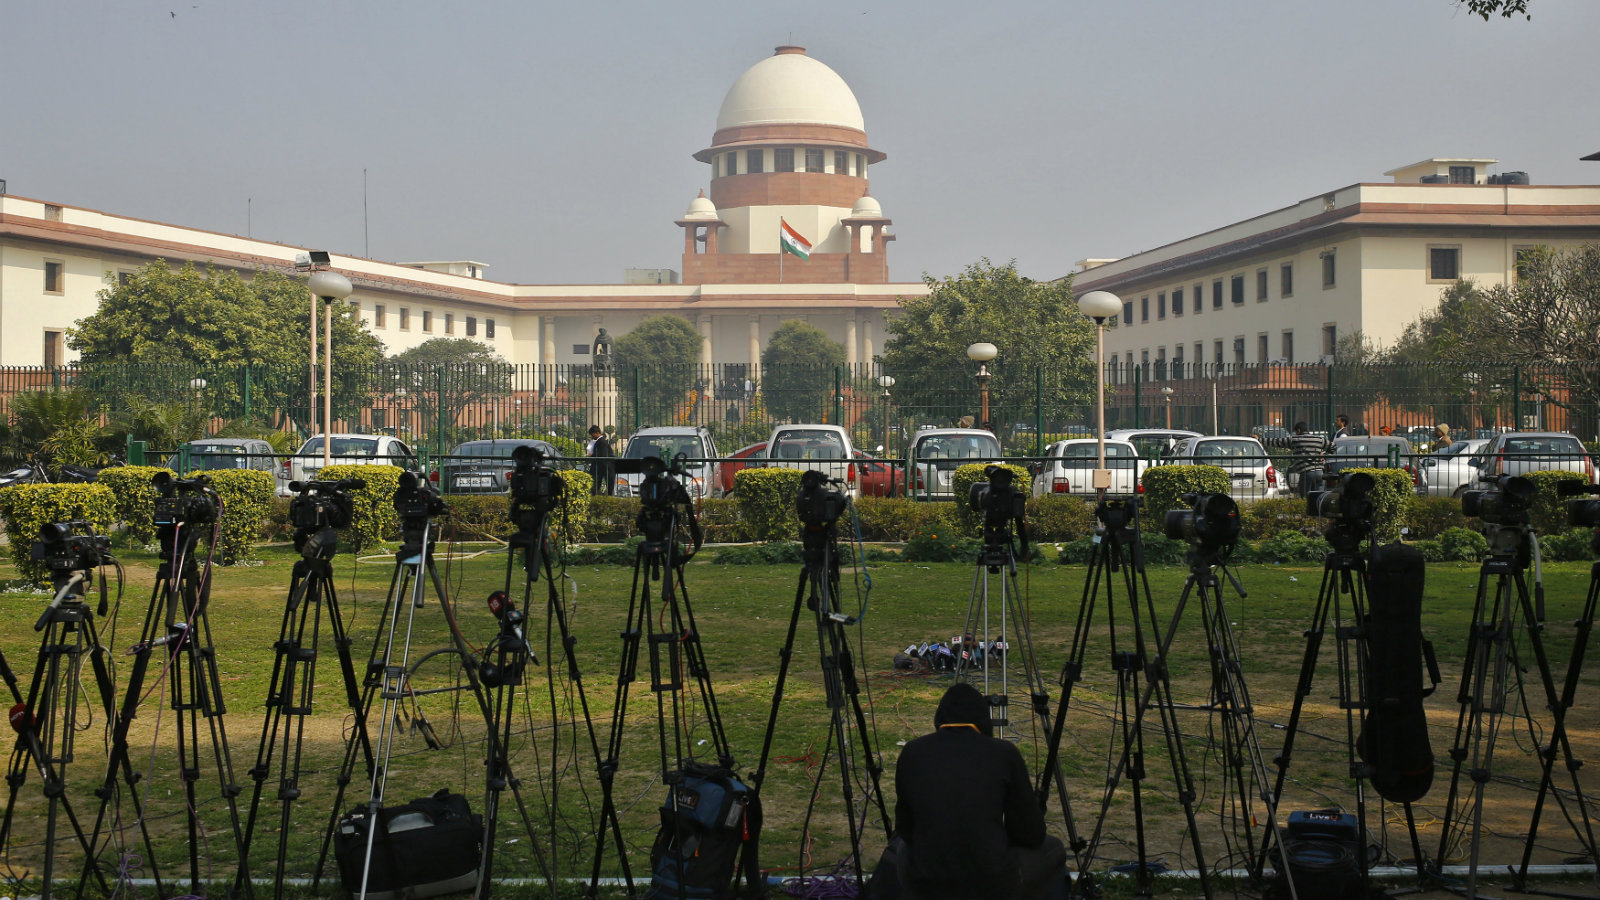 Only transparency can fix the crisis in India's supreme court ...